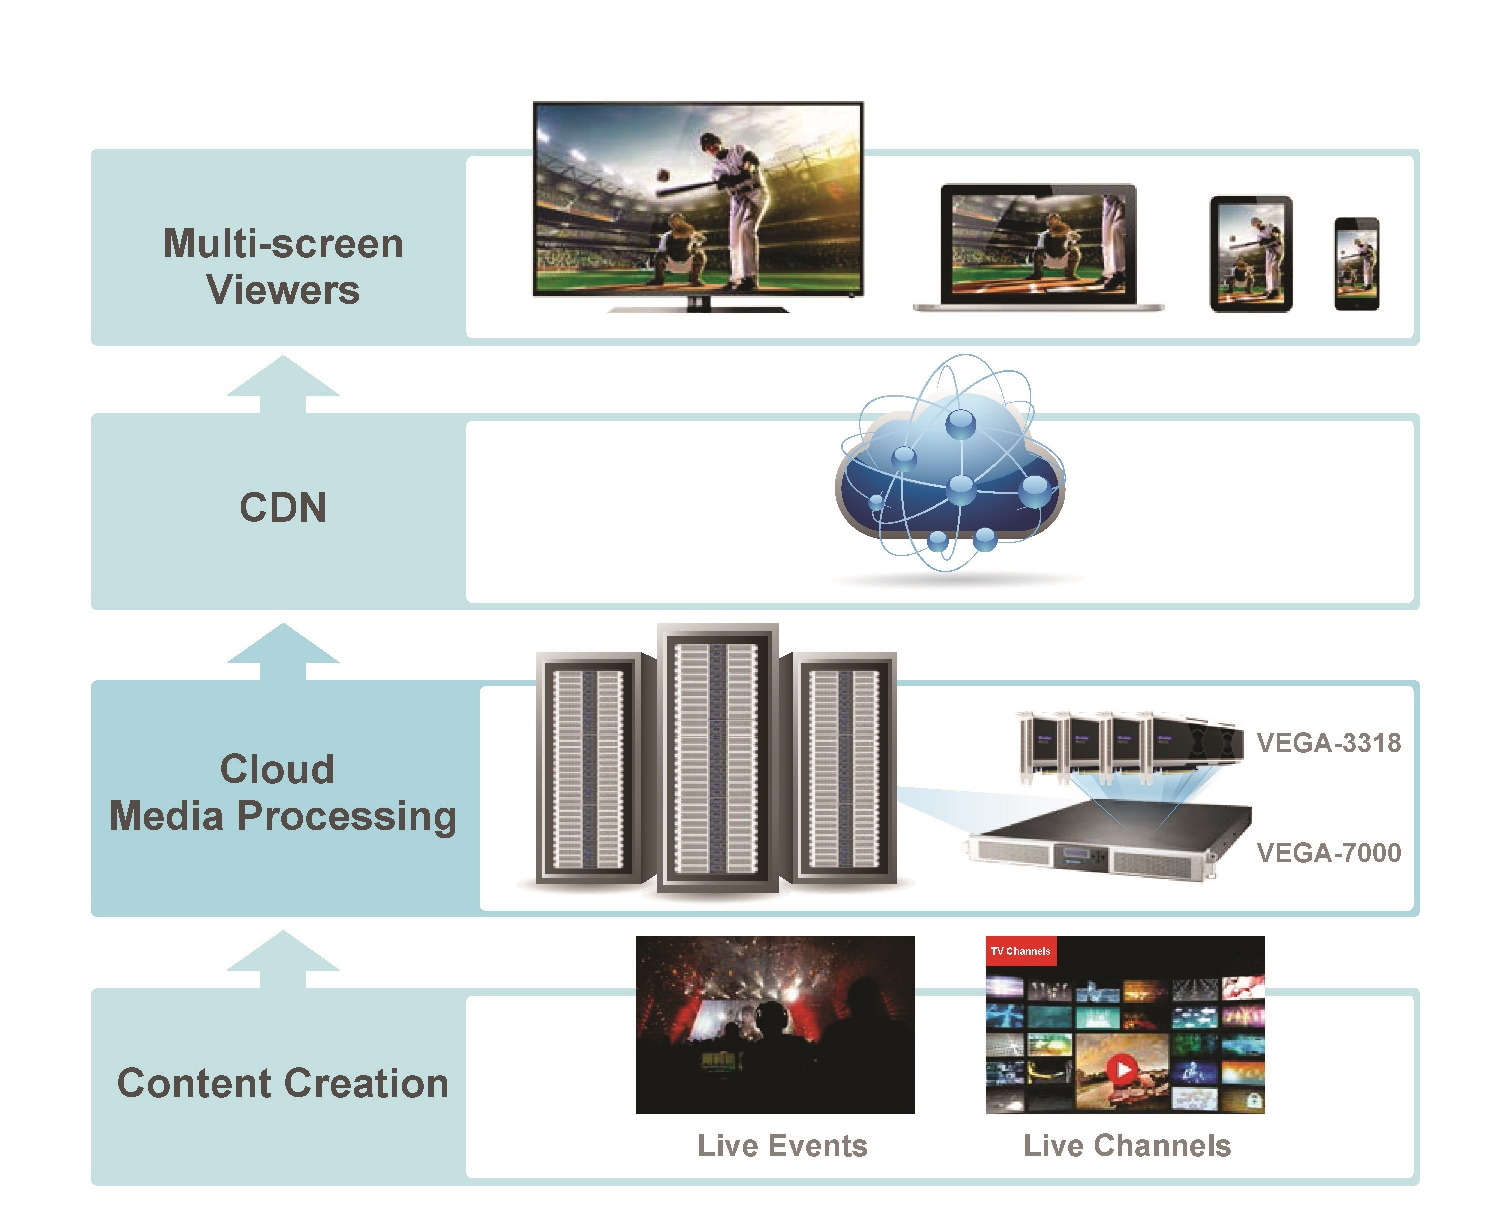 Highest Density Cloud Media Processing for OTT Video Delivery